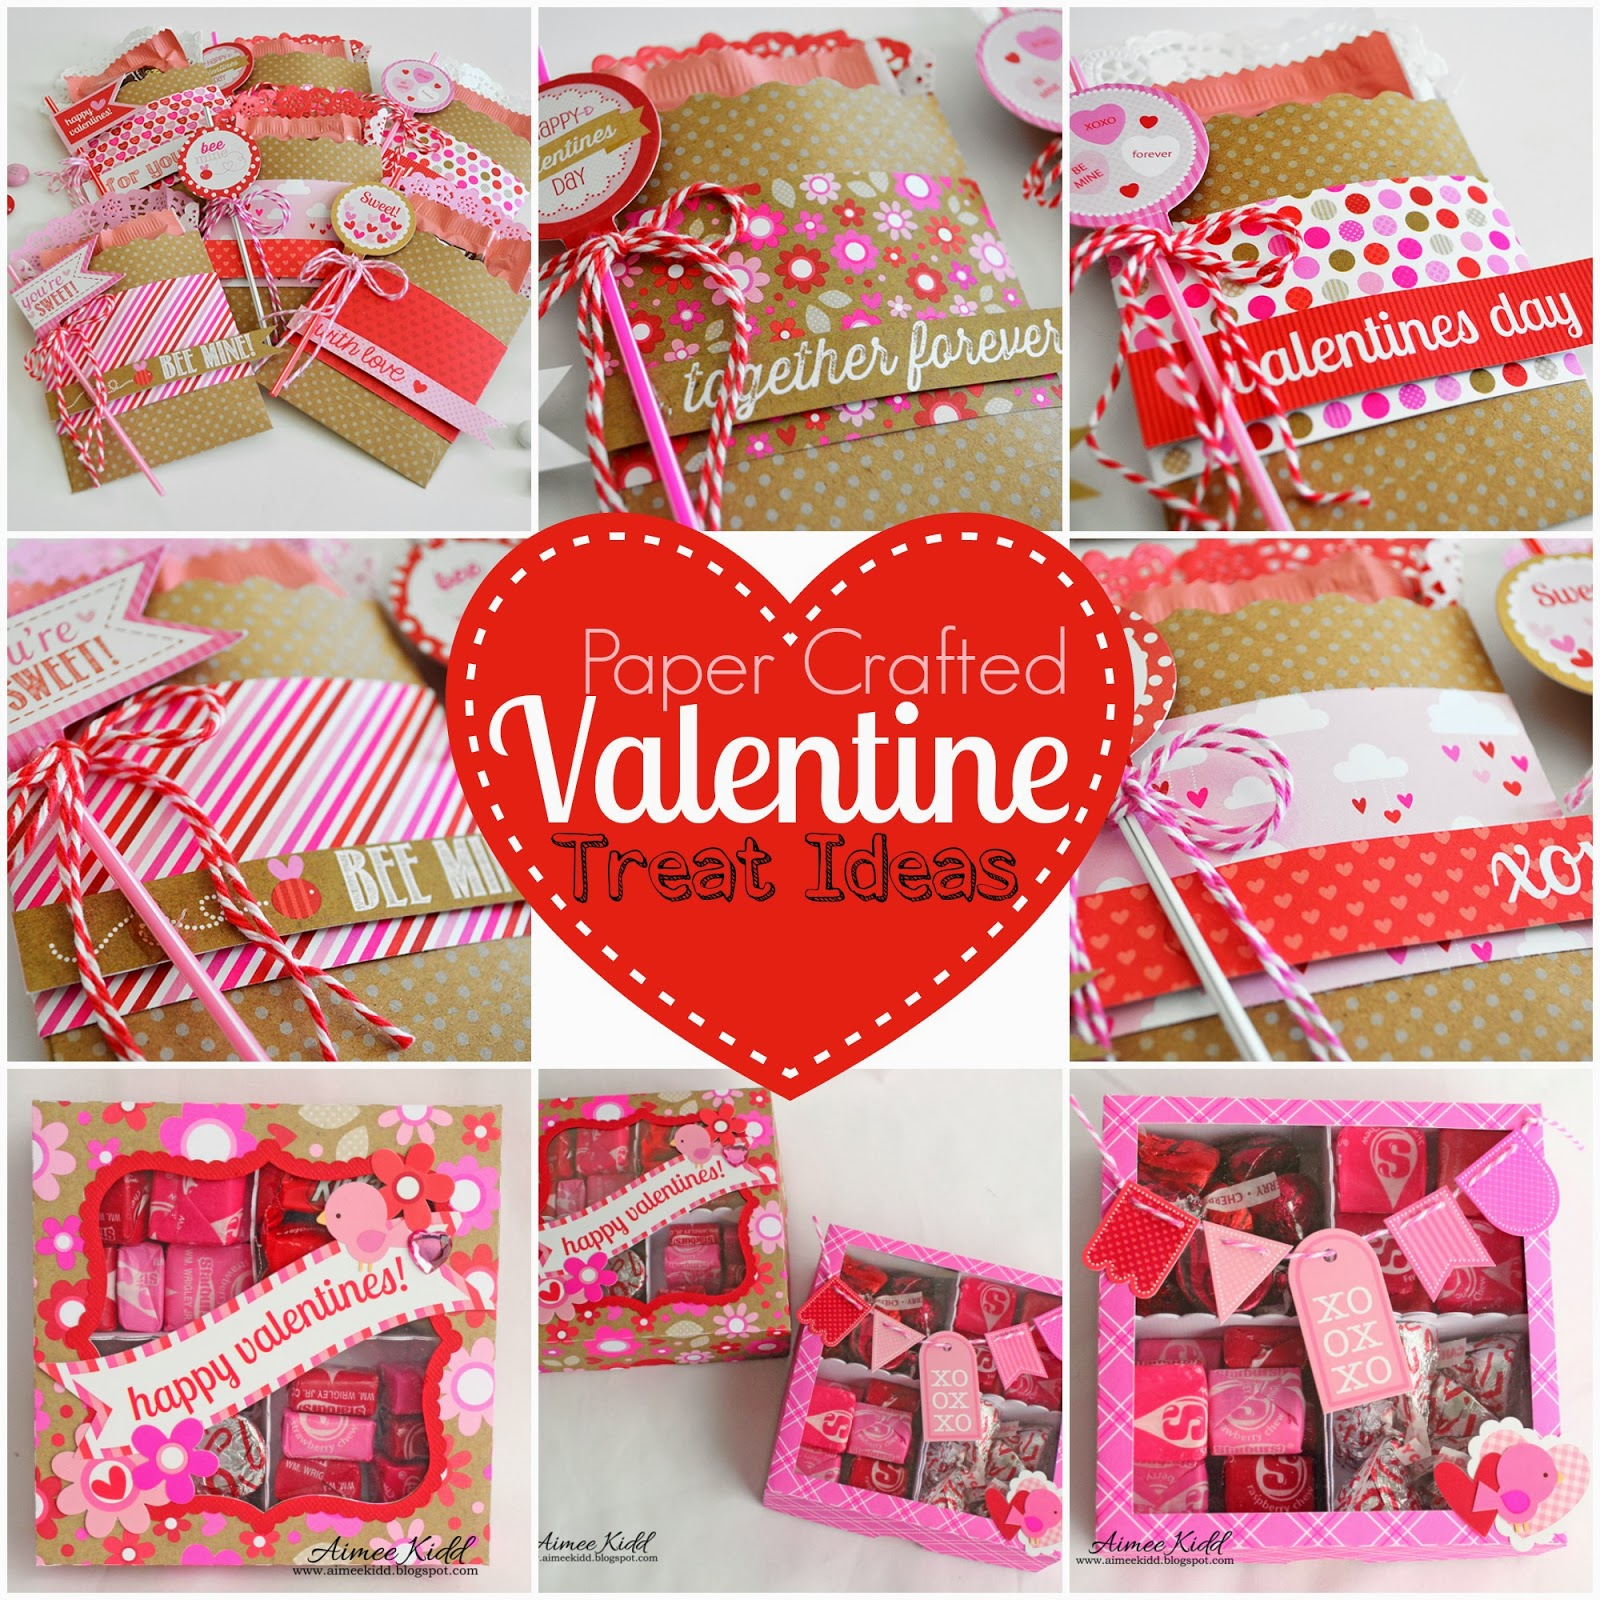 valentines treat bags by wendy sue anderson hi doodlebug friends its wendy sue sharing a fun little project chocolate is always a great treat to - Valentine Treat Bag Ideas